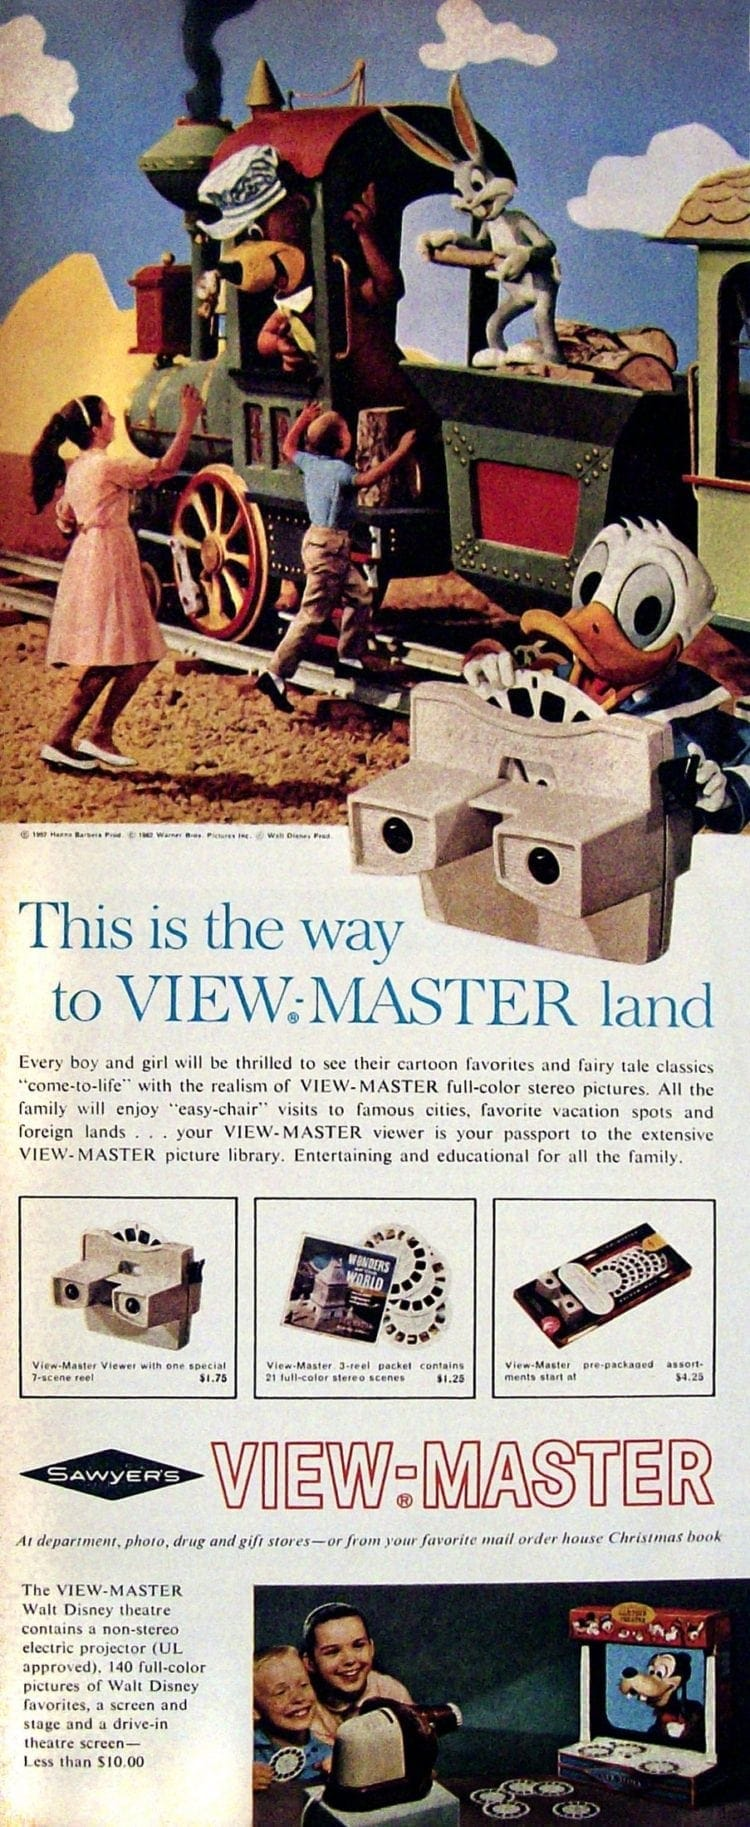 This is the way to View-Master land - With Yogi Bear, Bugs Bunny & Donald Duck (1962)